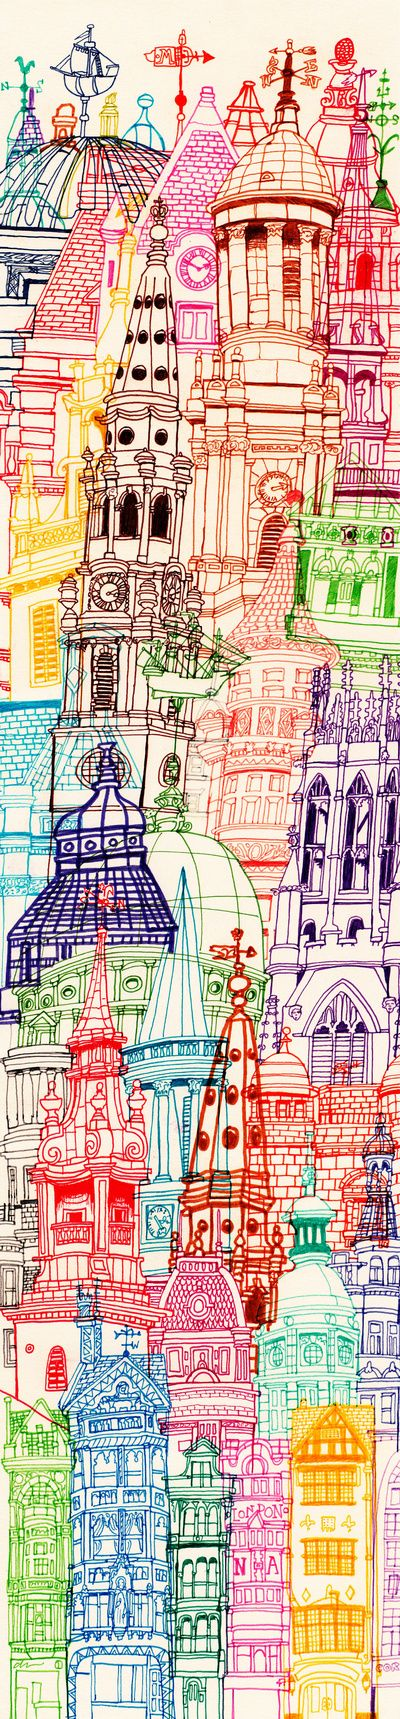 Drawn wallpaper london Best city on London Art